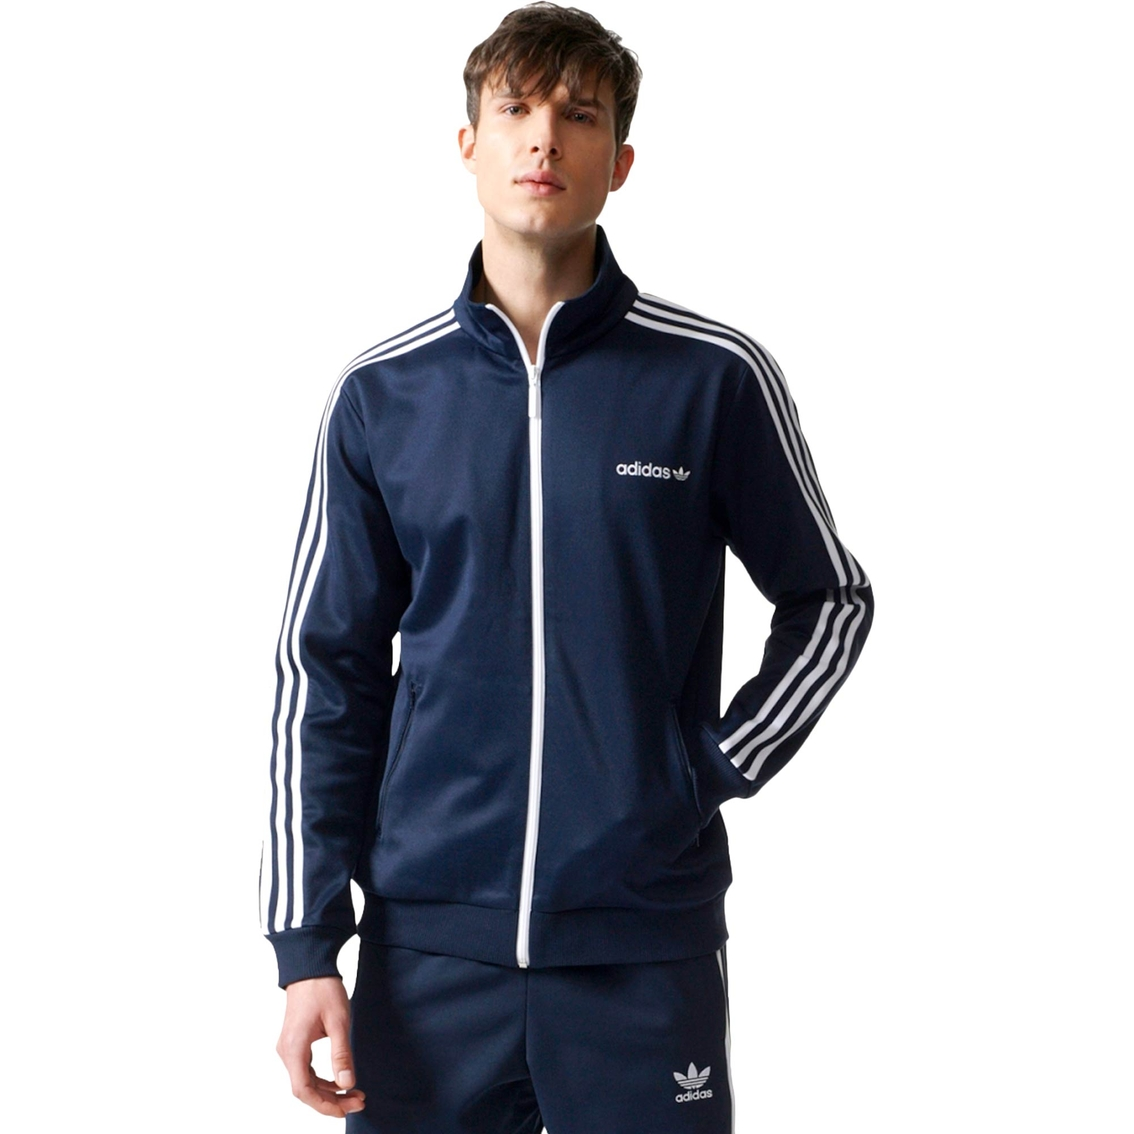 fatiga Pase para saber Maestro  Adidas Beckenbauer Track Jacket | Hoodies & Jackets | Clothing &  Accessories | Shop The Exchange